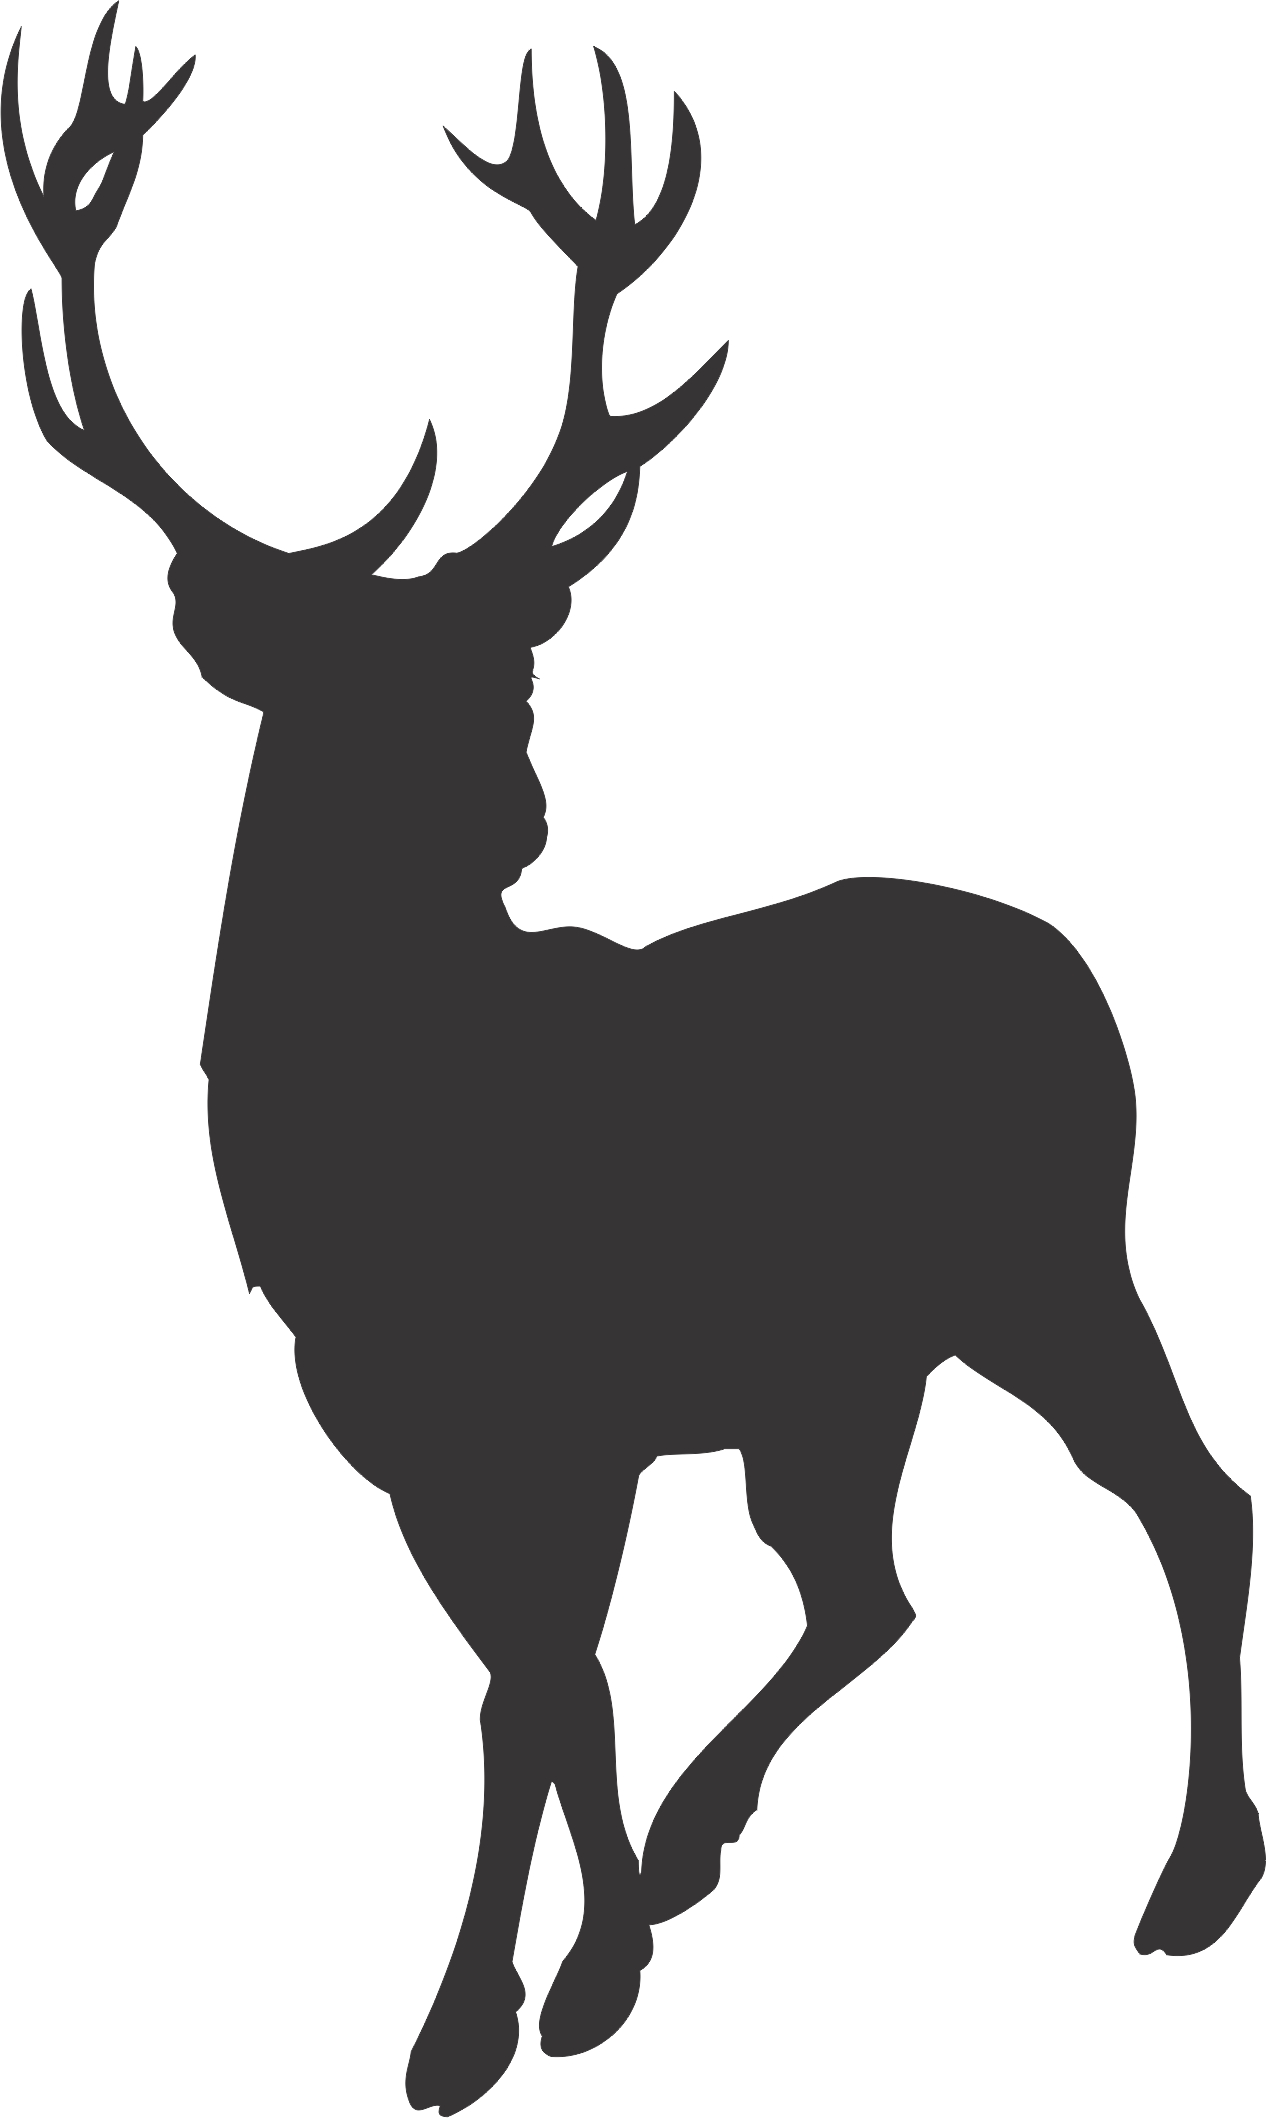 1266x2118 Deer Vector 1 An Images Hub